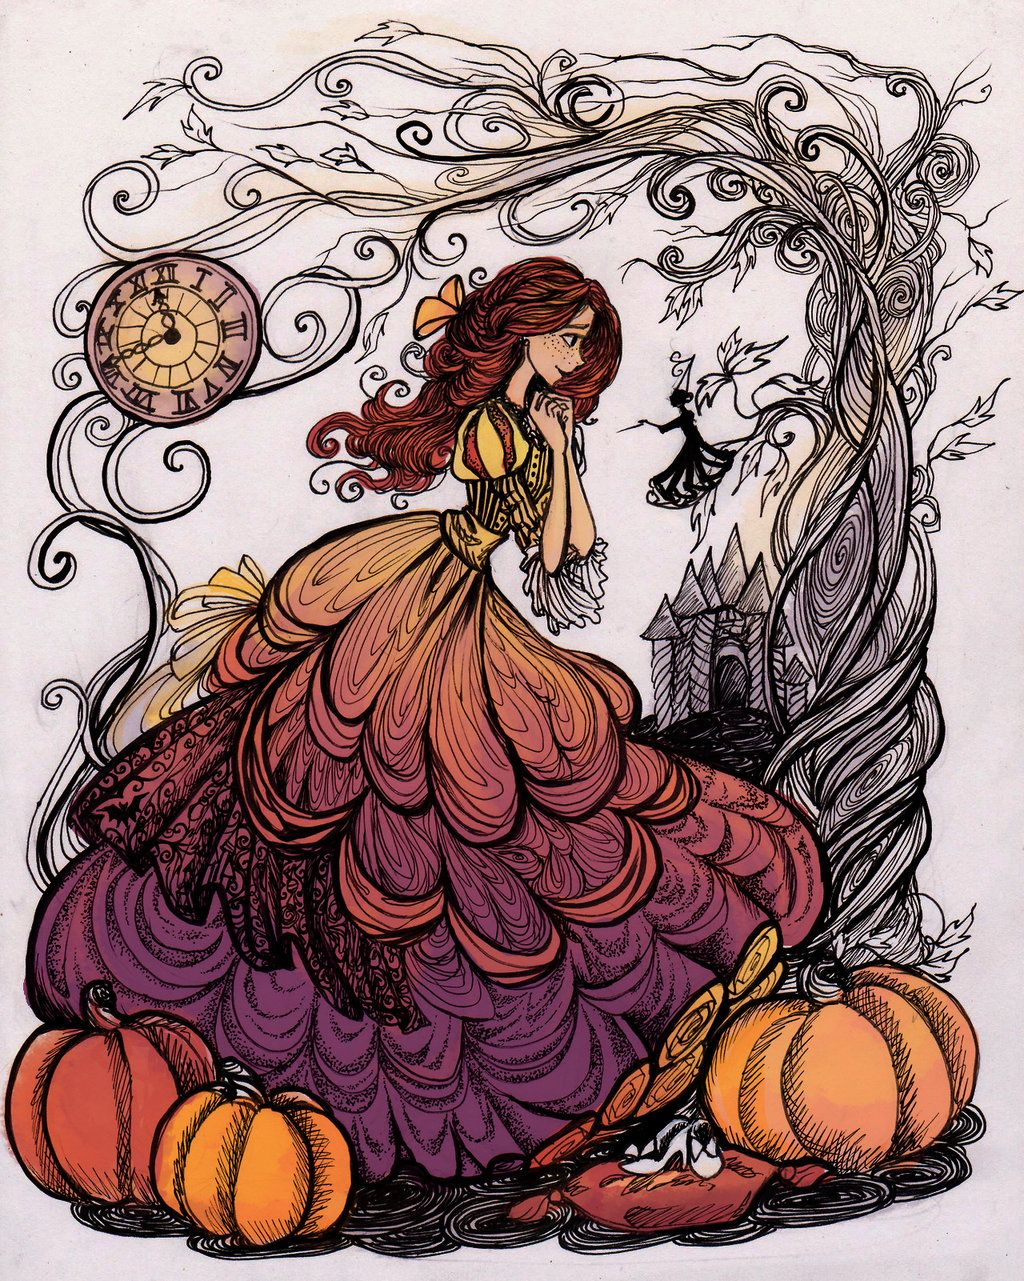 the Pumpkin Princess by La-Chapeliere-Folle.deviantart.com on @DeviantArt